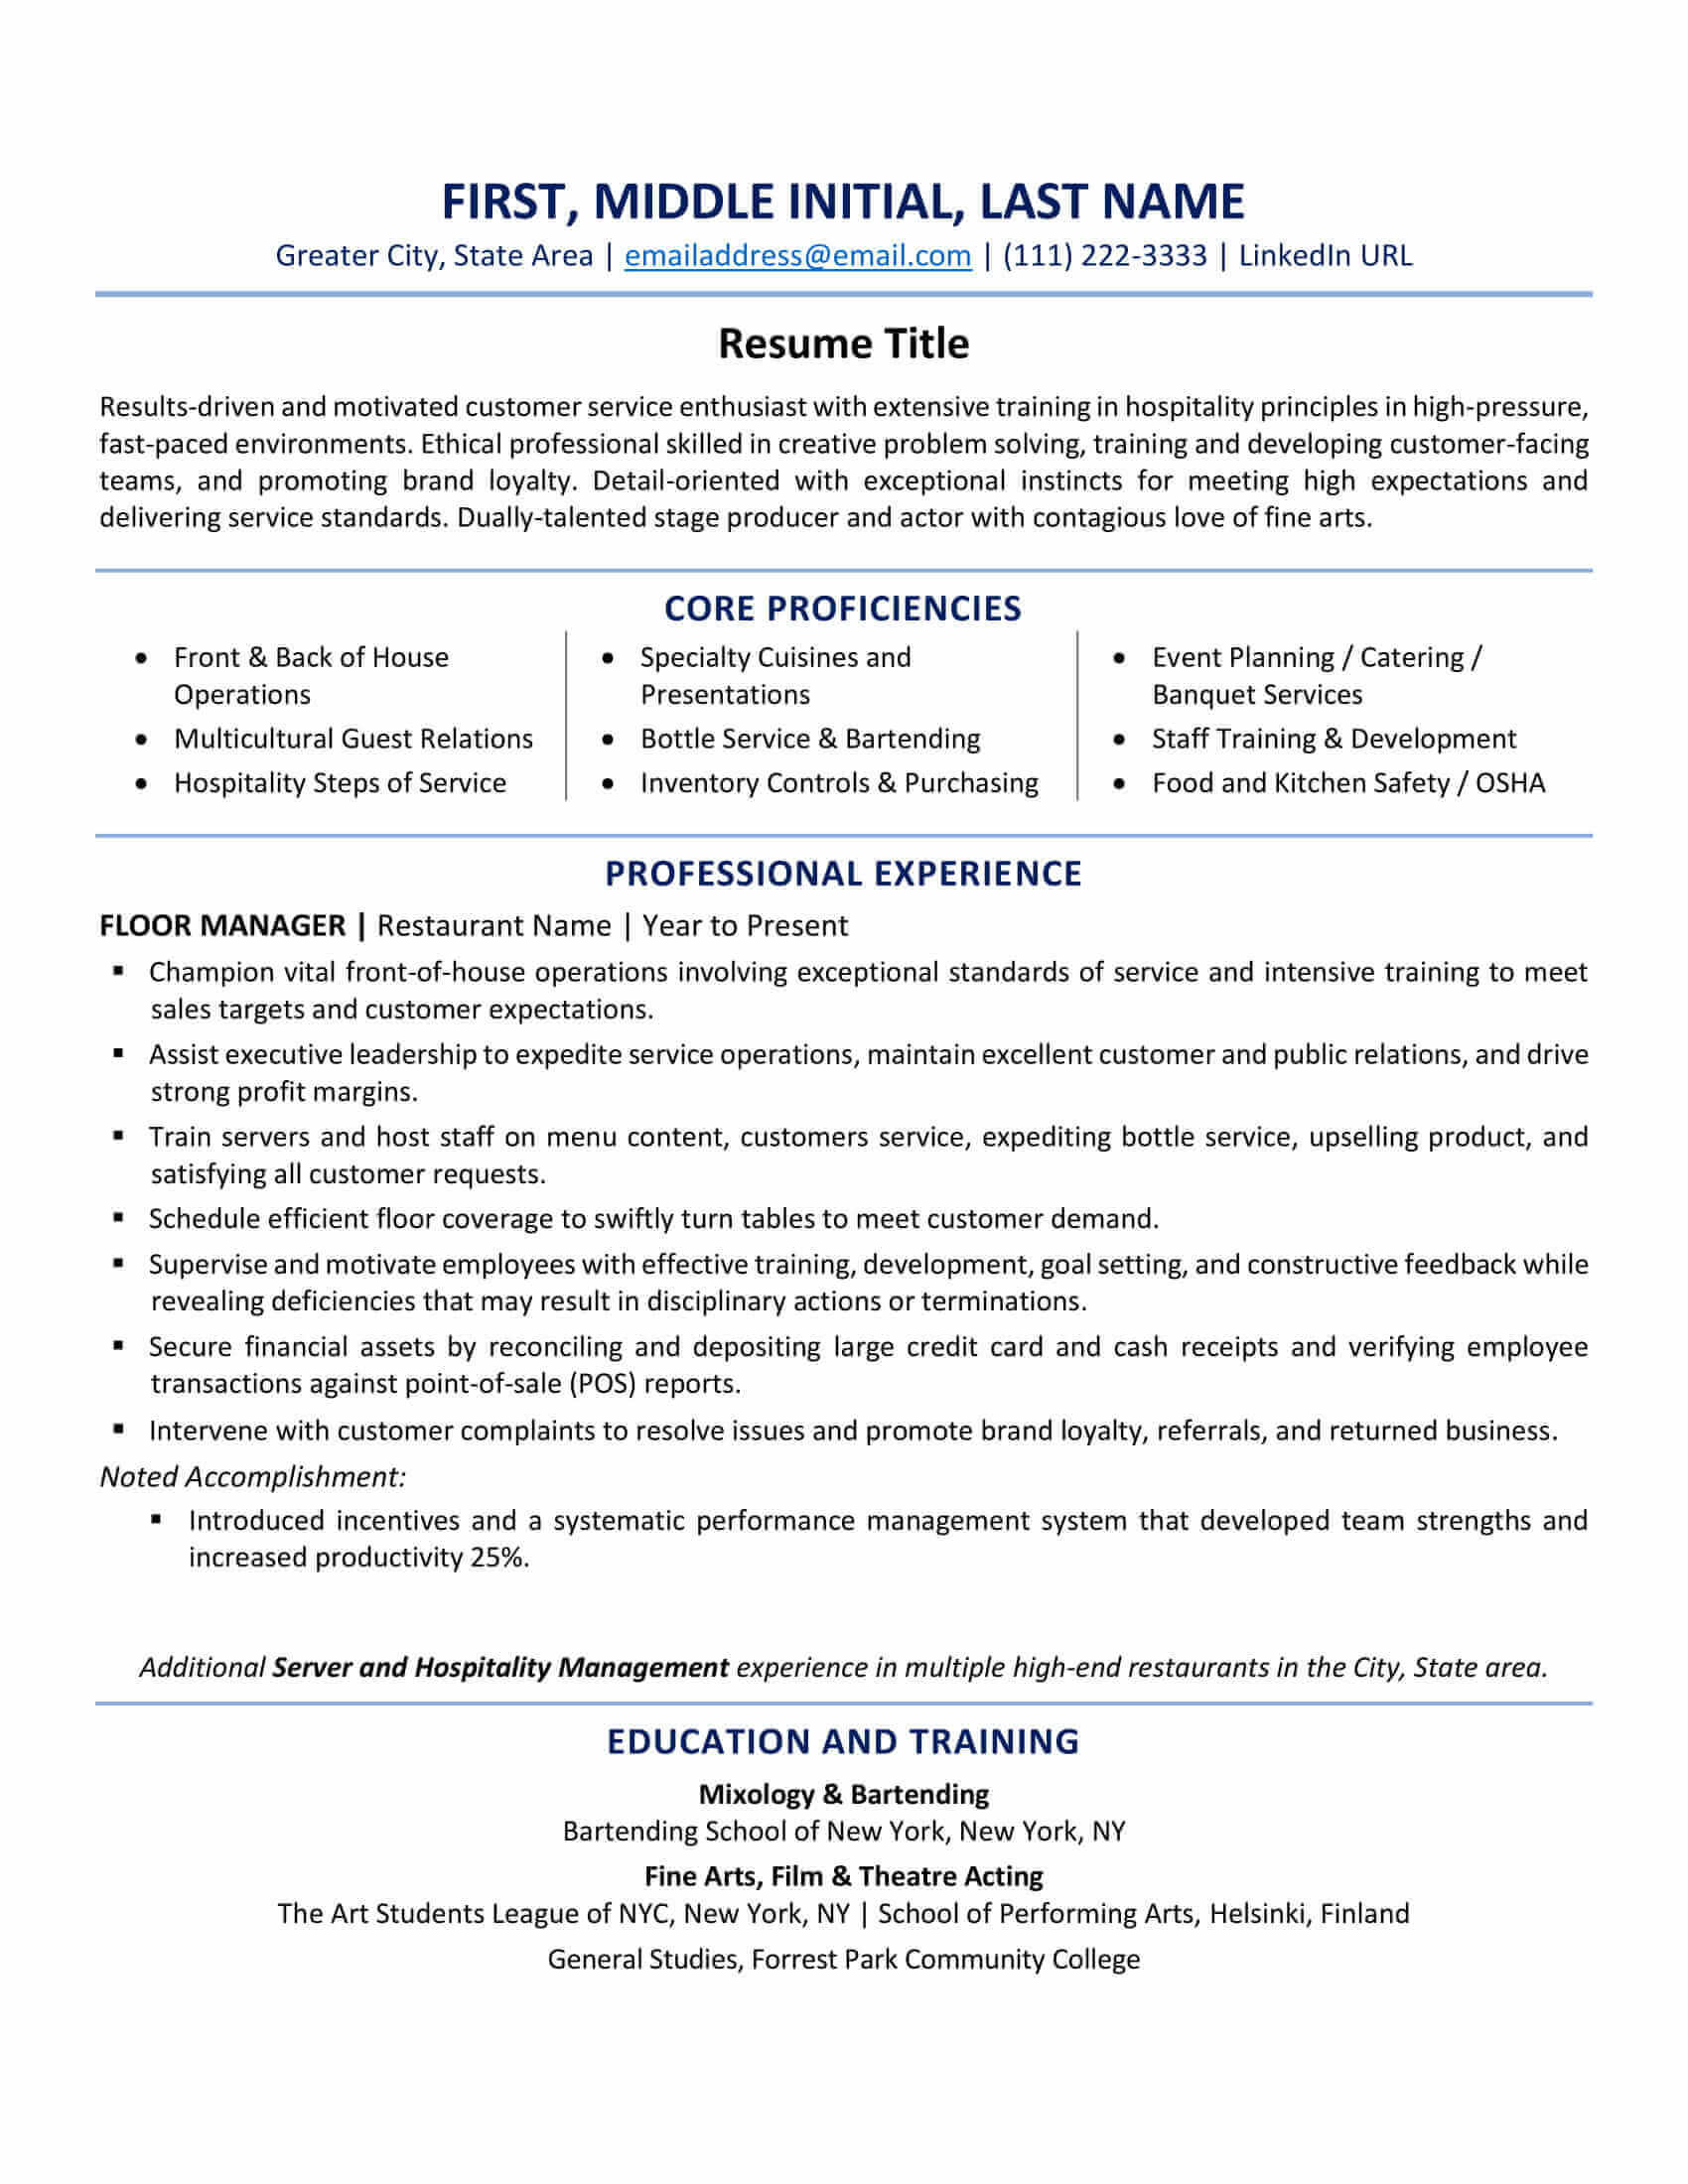 ats resume test free checker and formatting examples scannable when moving to the us Resume Ats Scannable Resume Examples